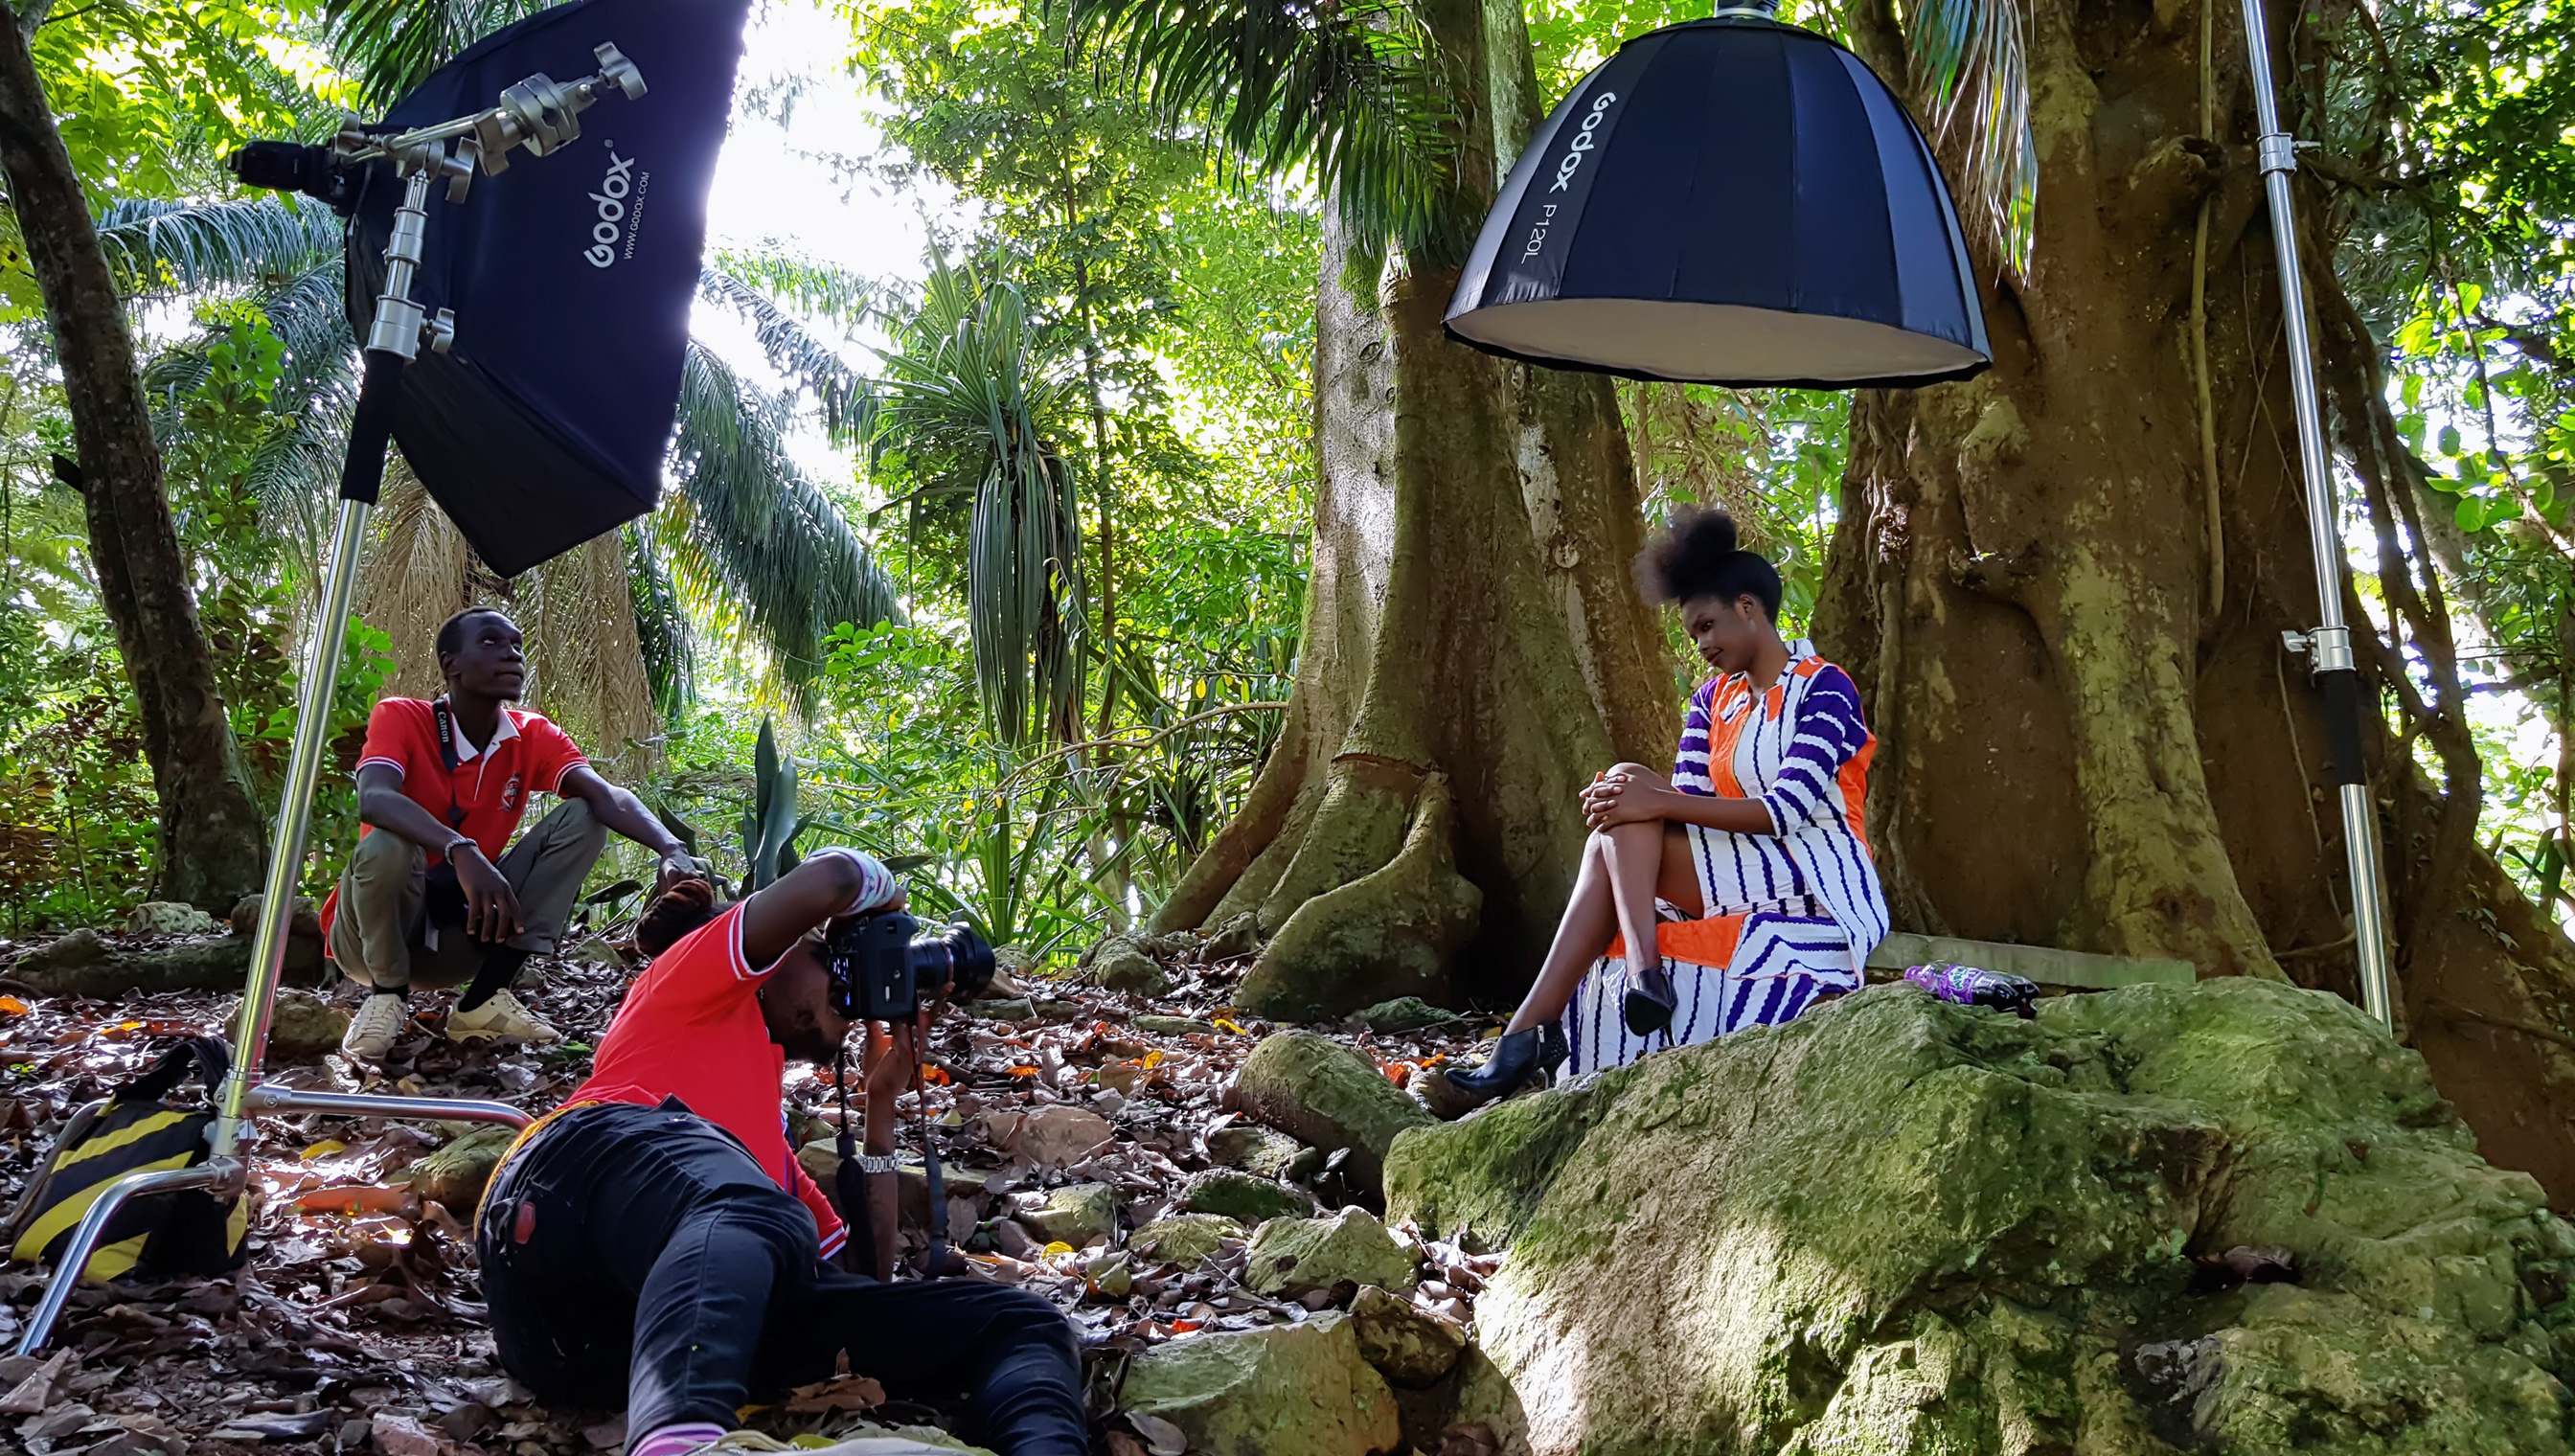 Onlocation hands on experience with the photography students of 2019 at Proline Film Academy